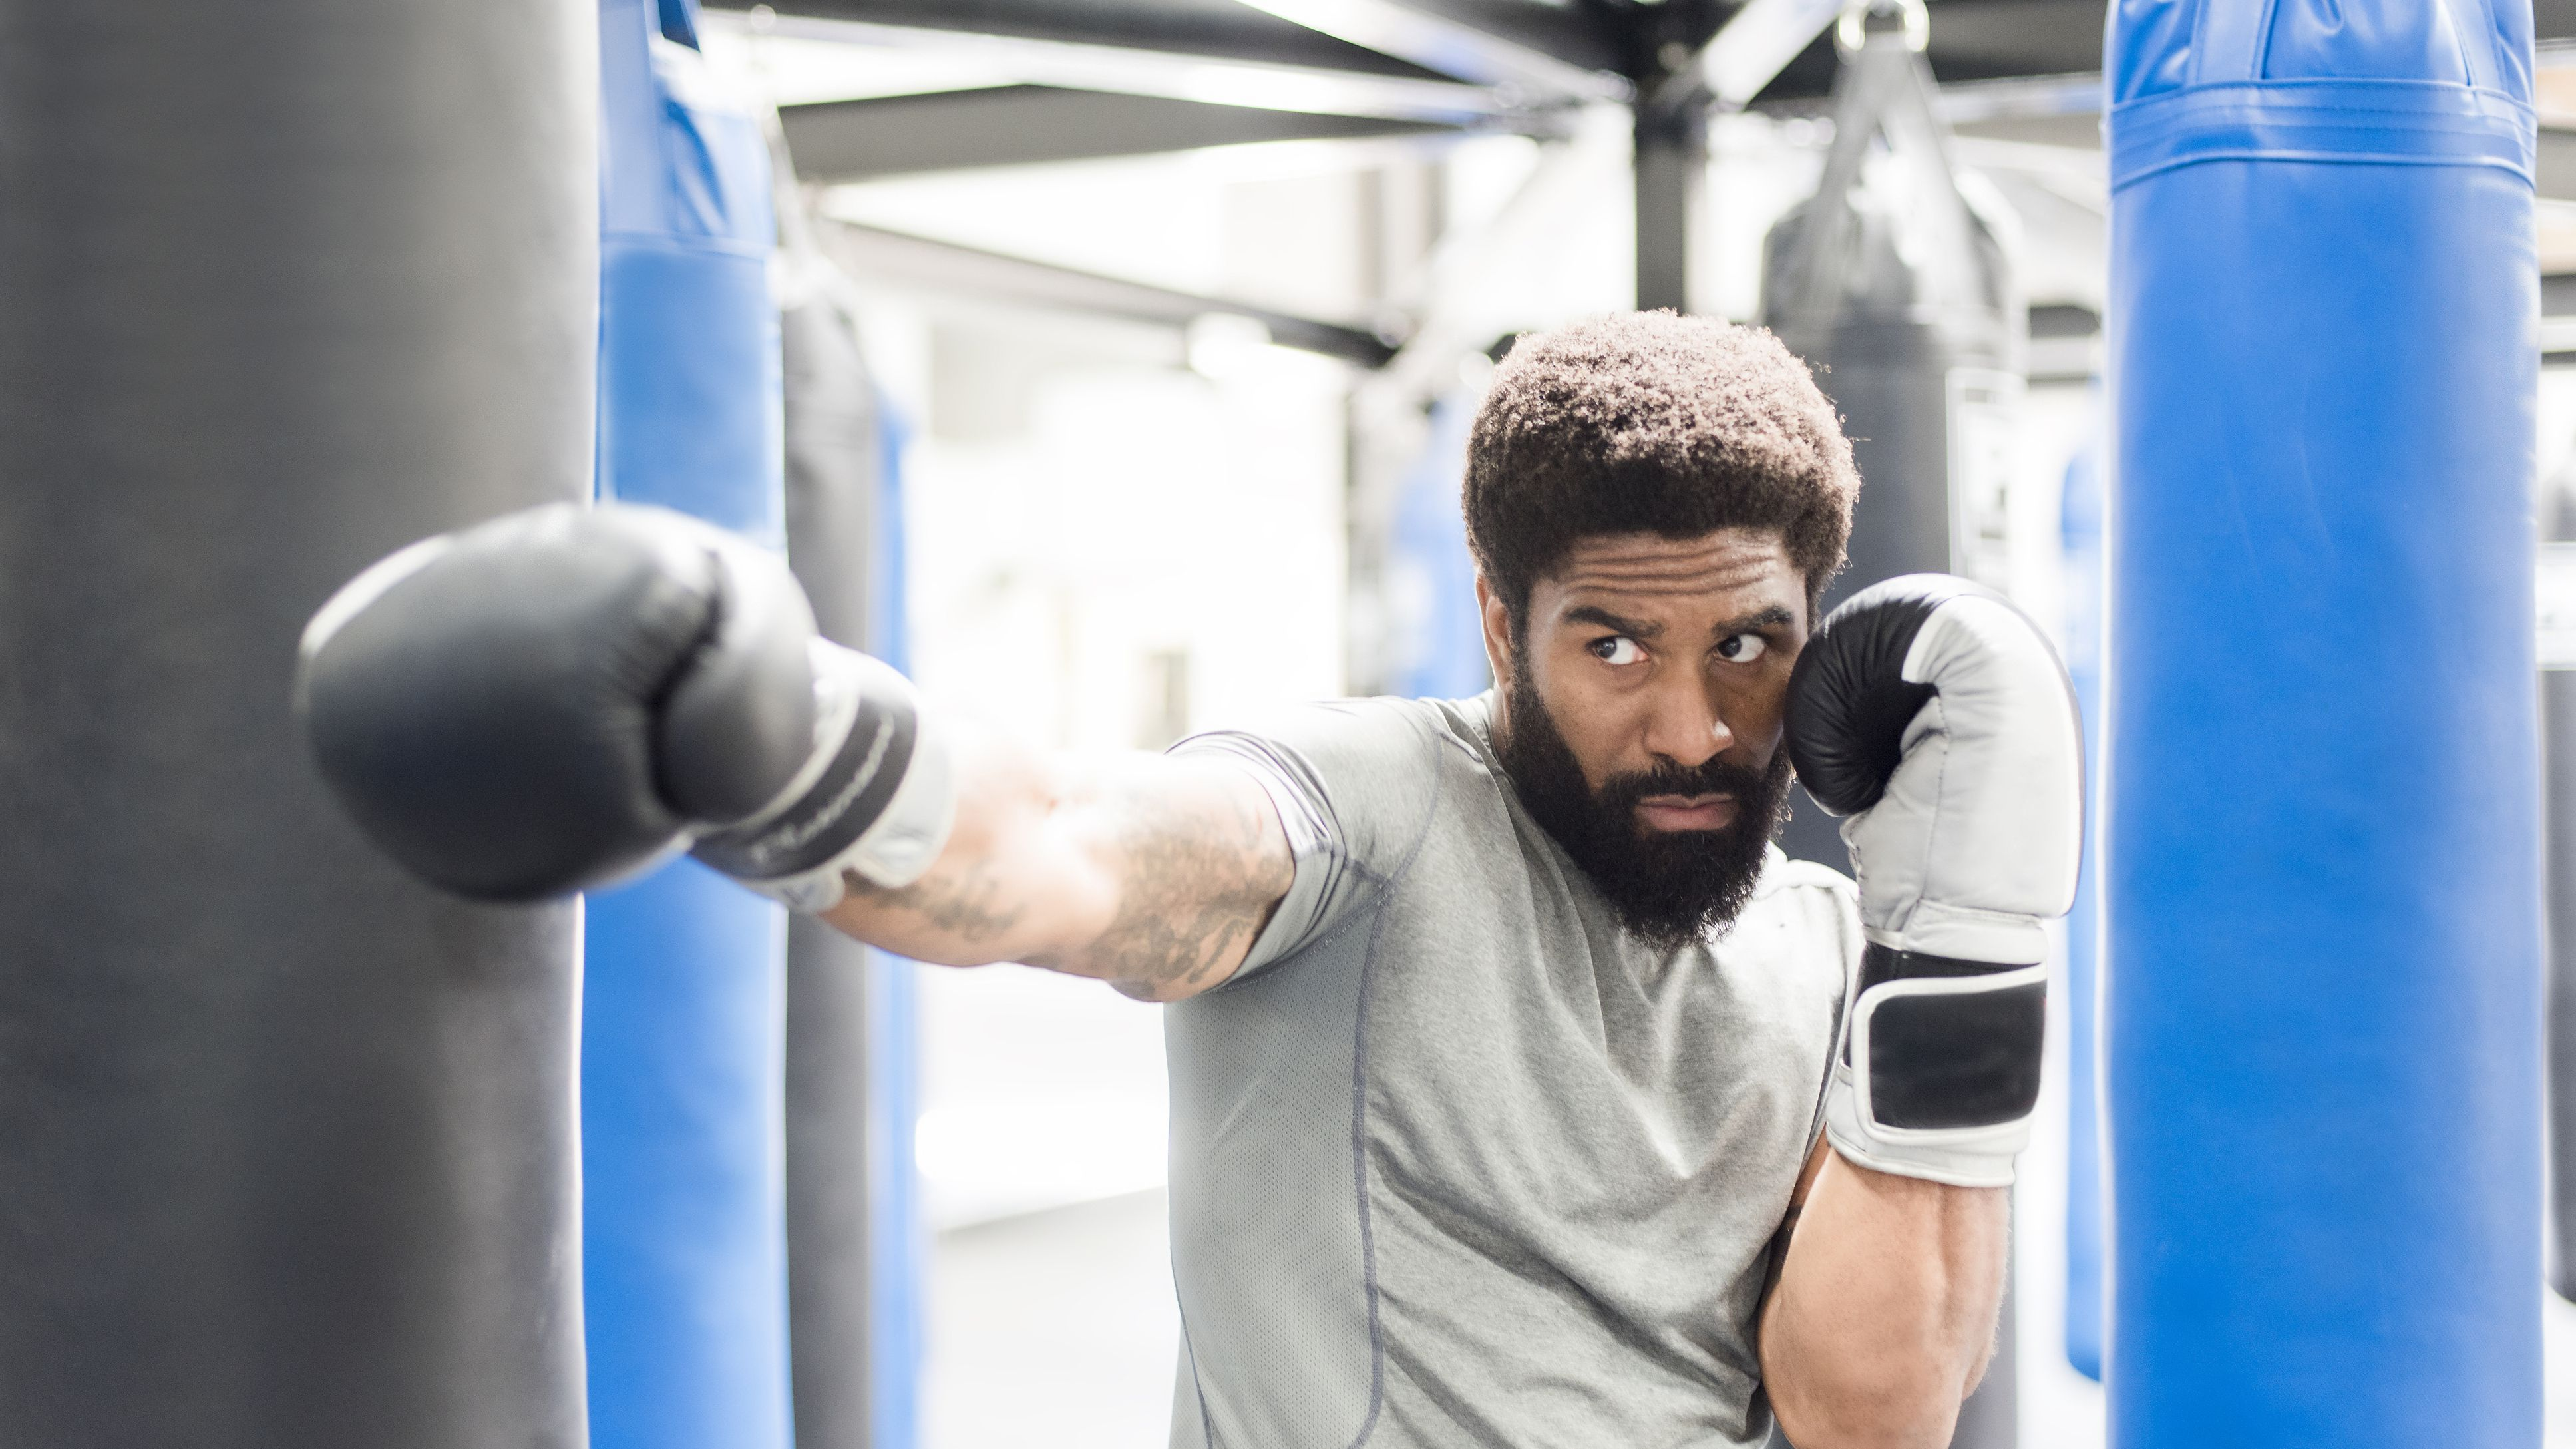 The 7 Best Punching Bags of 2019